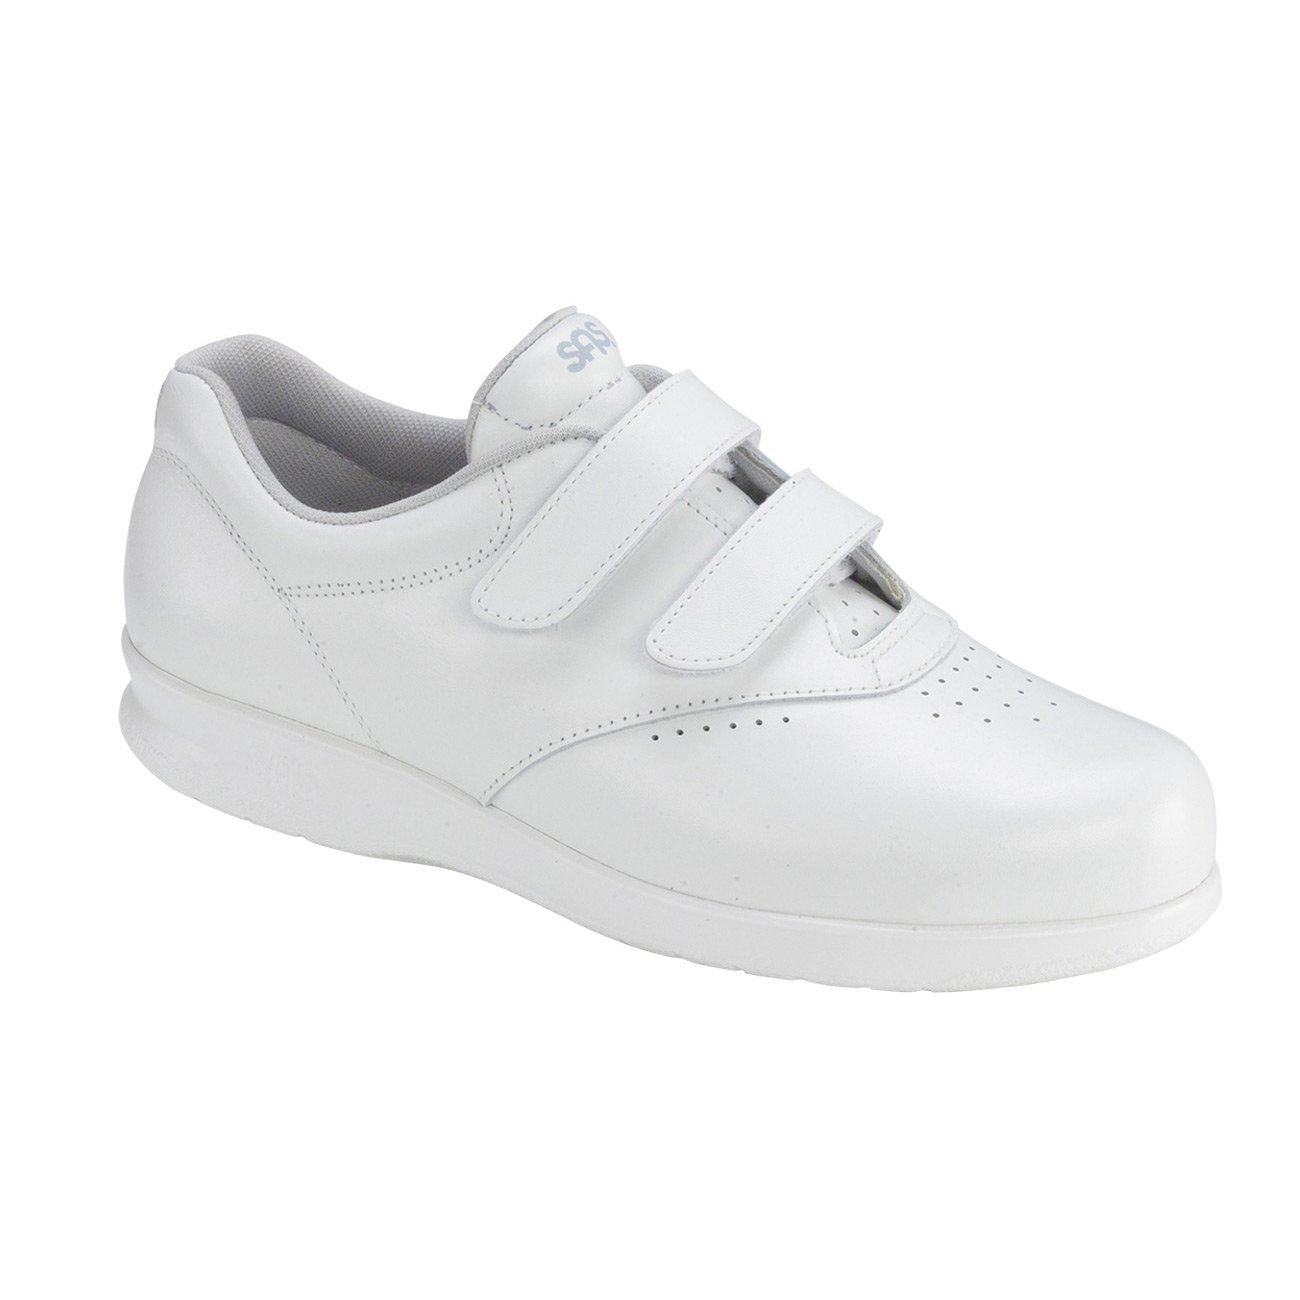 SAS Womens Top Me Too Leather Low Top Womens Walking Shoes B01MFAW802 6 (W) Wide|White d27ce3